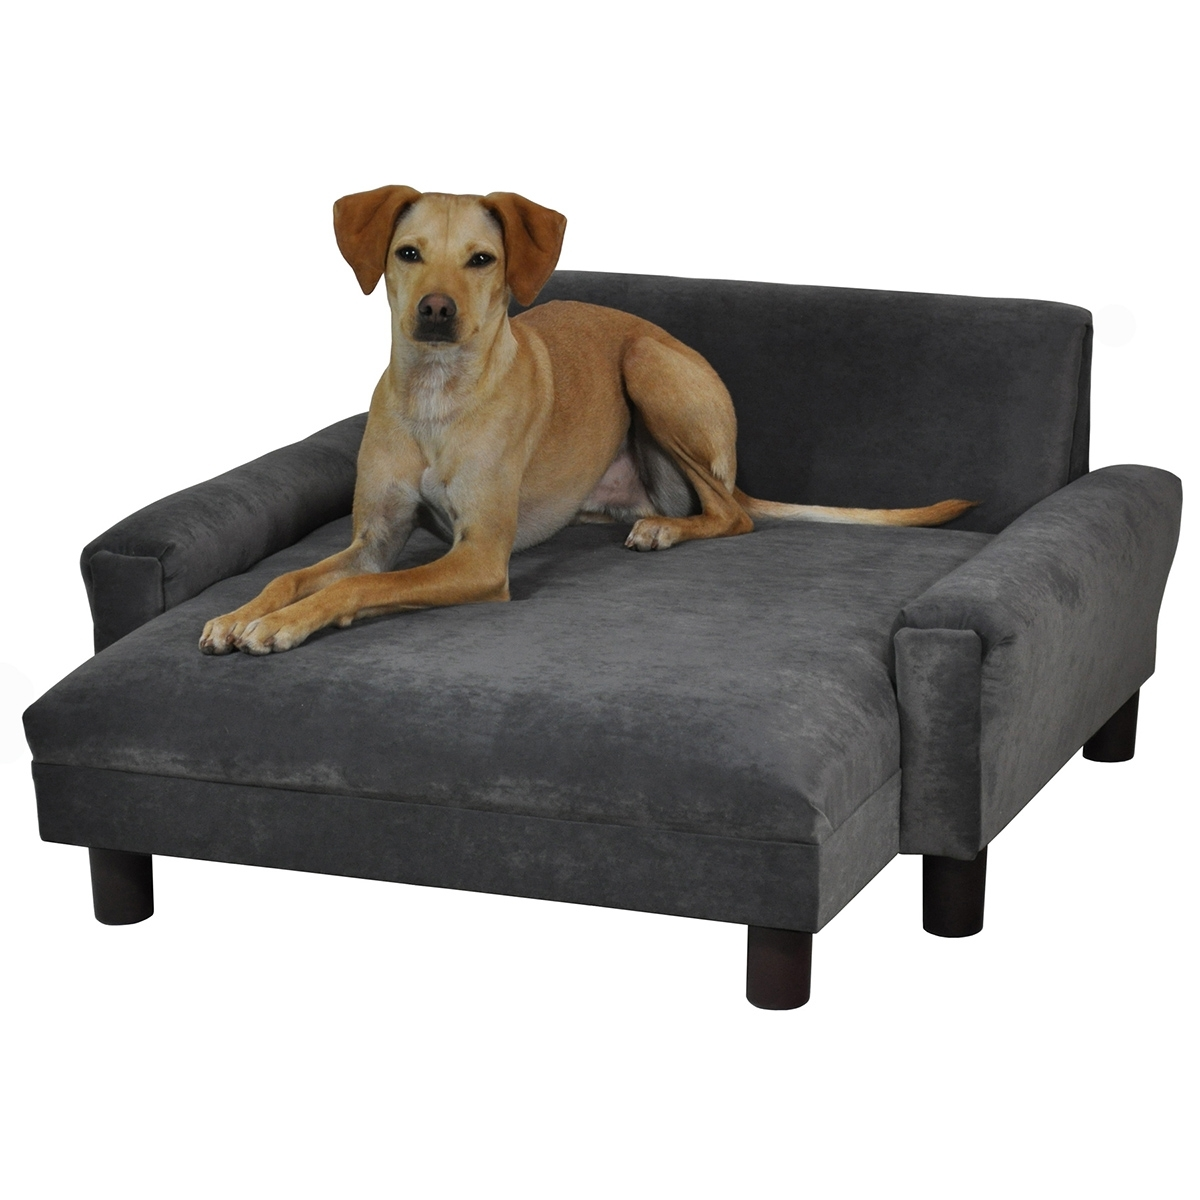 Dog Chaise Lounges With Regard To 2017 Modern Dog Chaise Lounge (View 7 of 15)